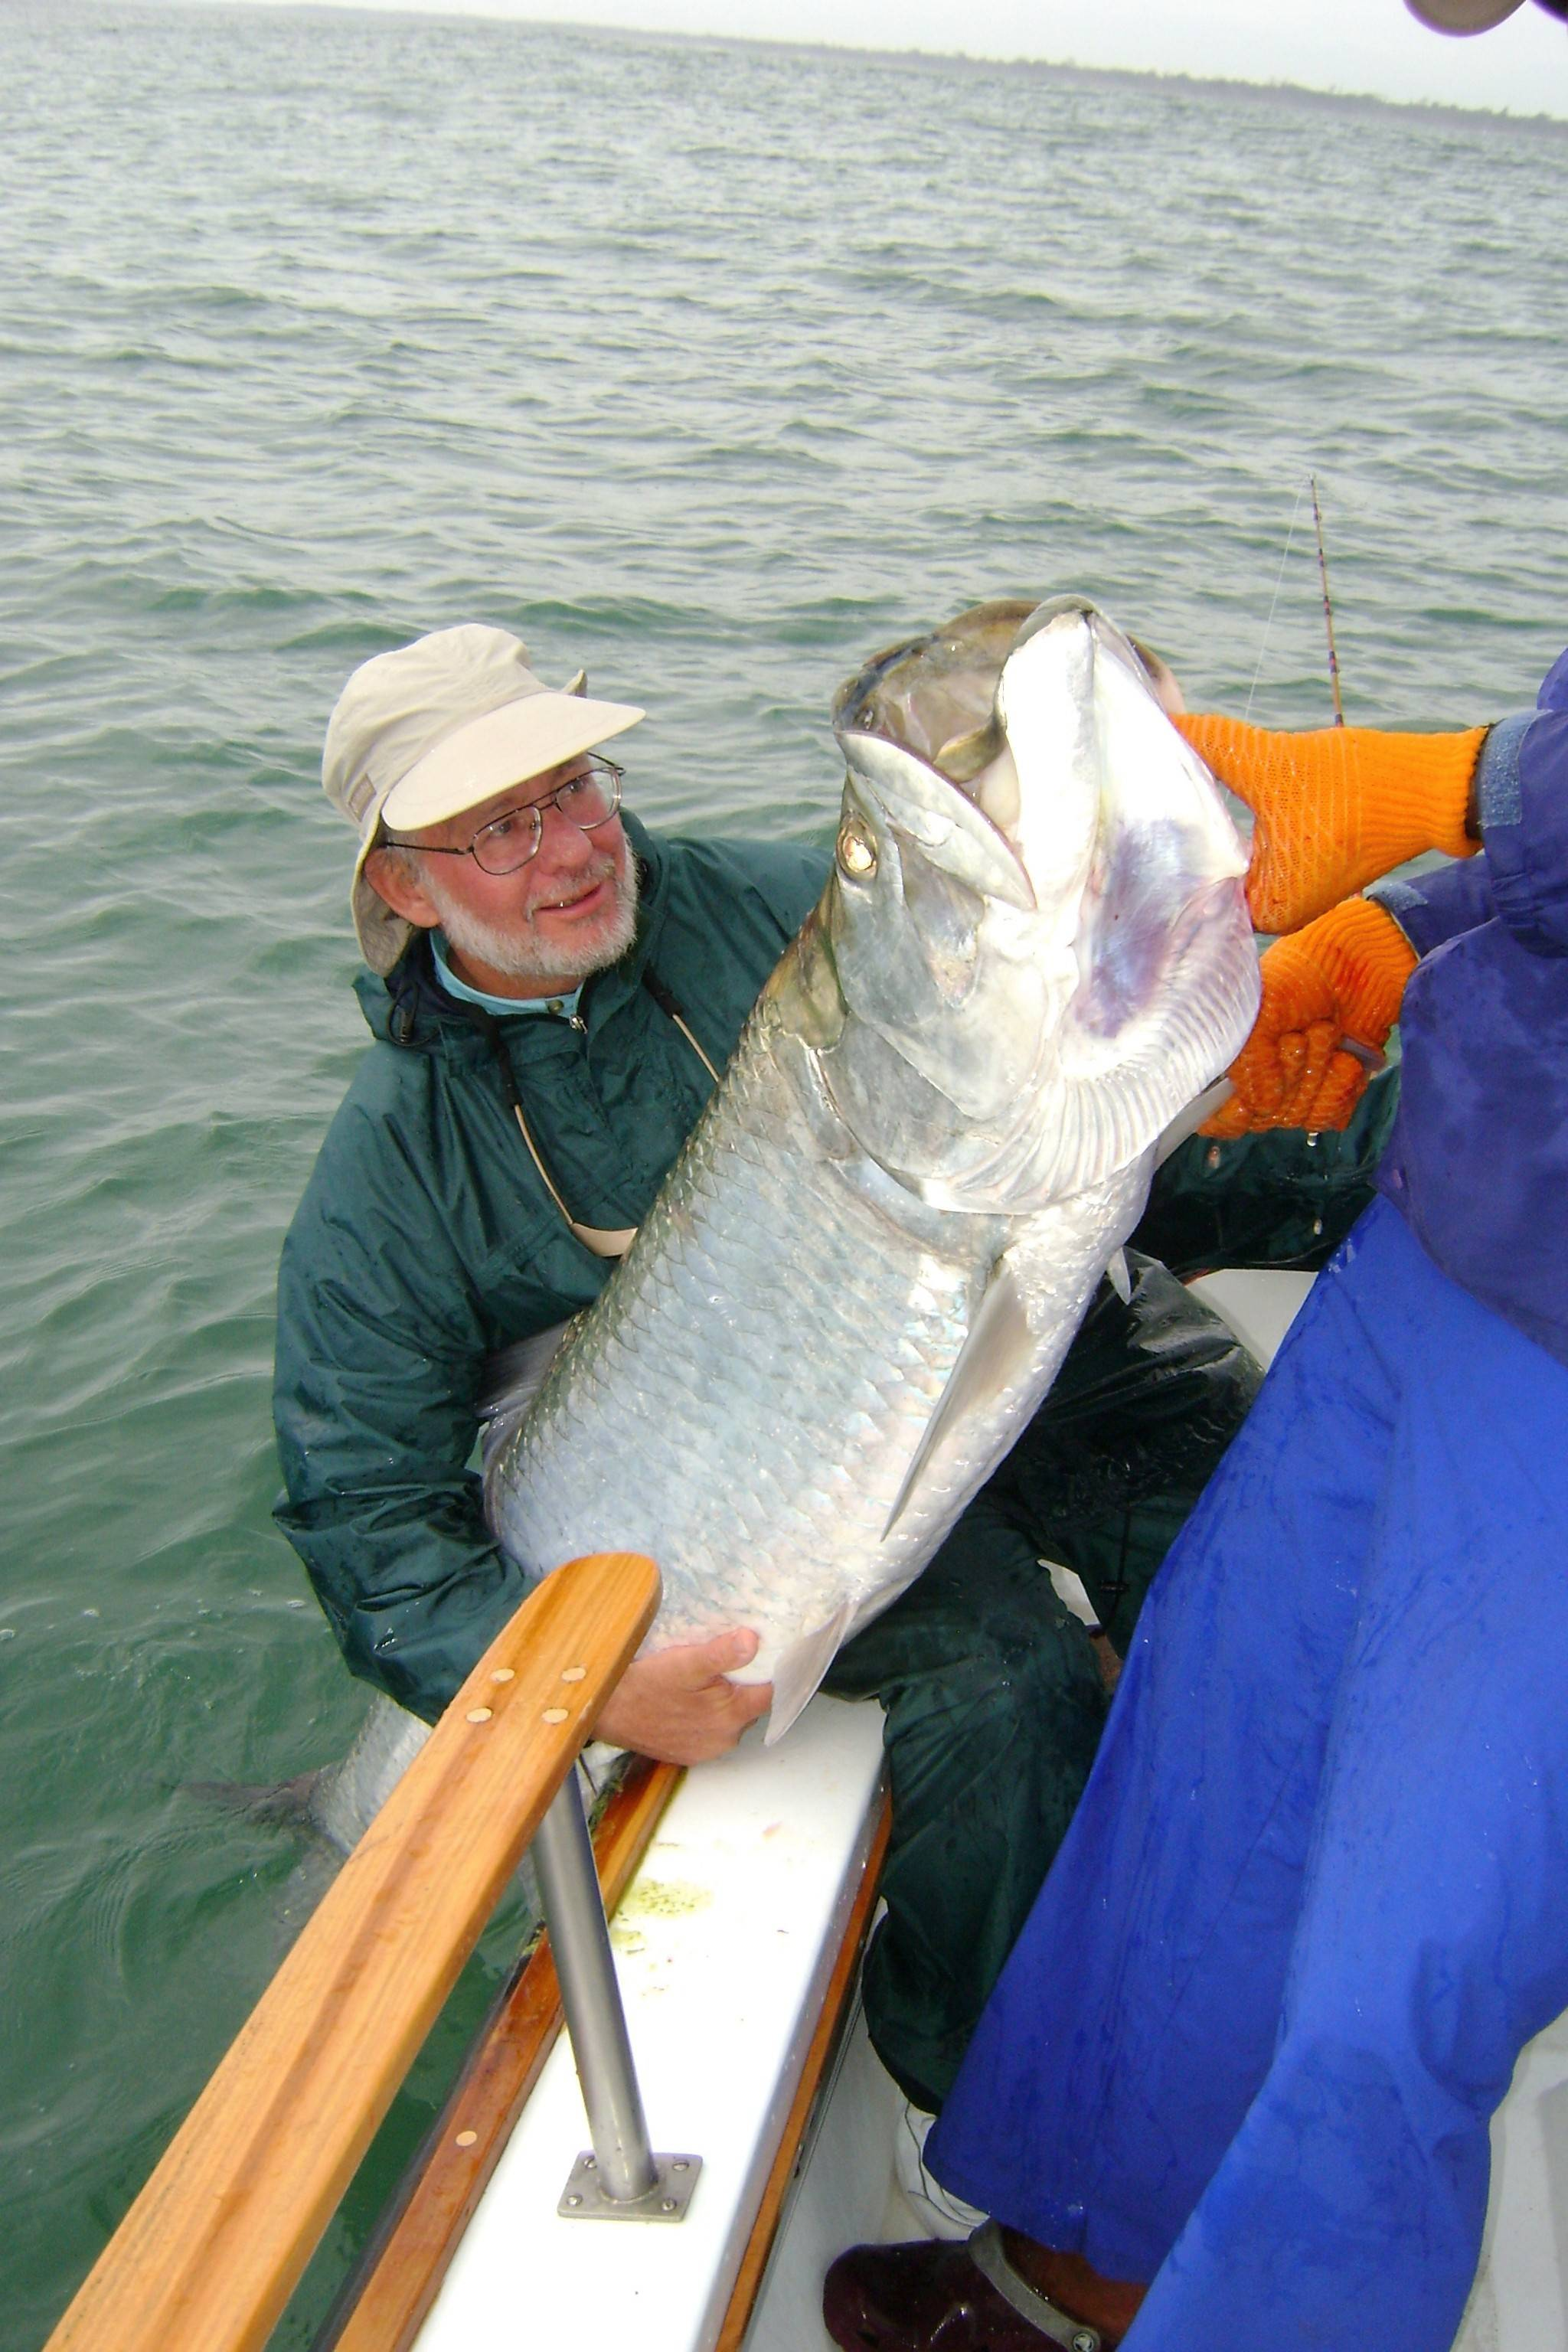 This 145-pound tarpon caught in Costa Rica certainly was a big challenge for Mike Seeling to land and control.